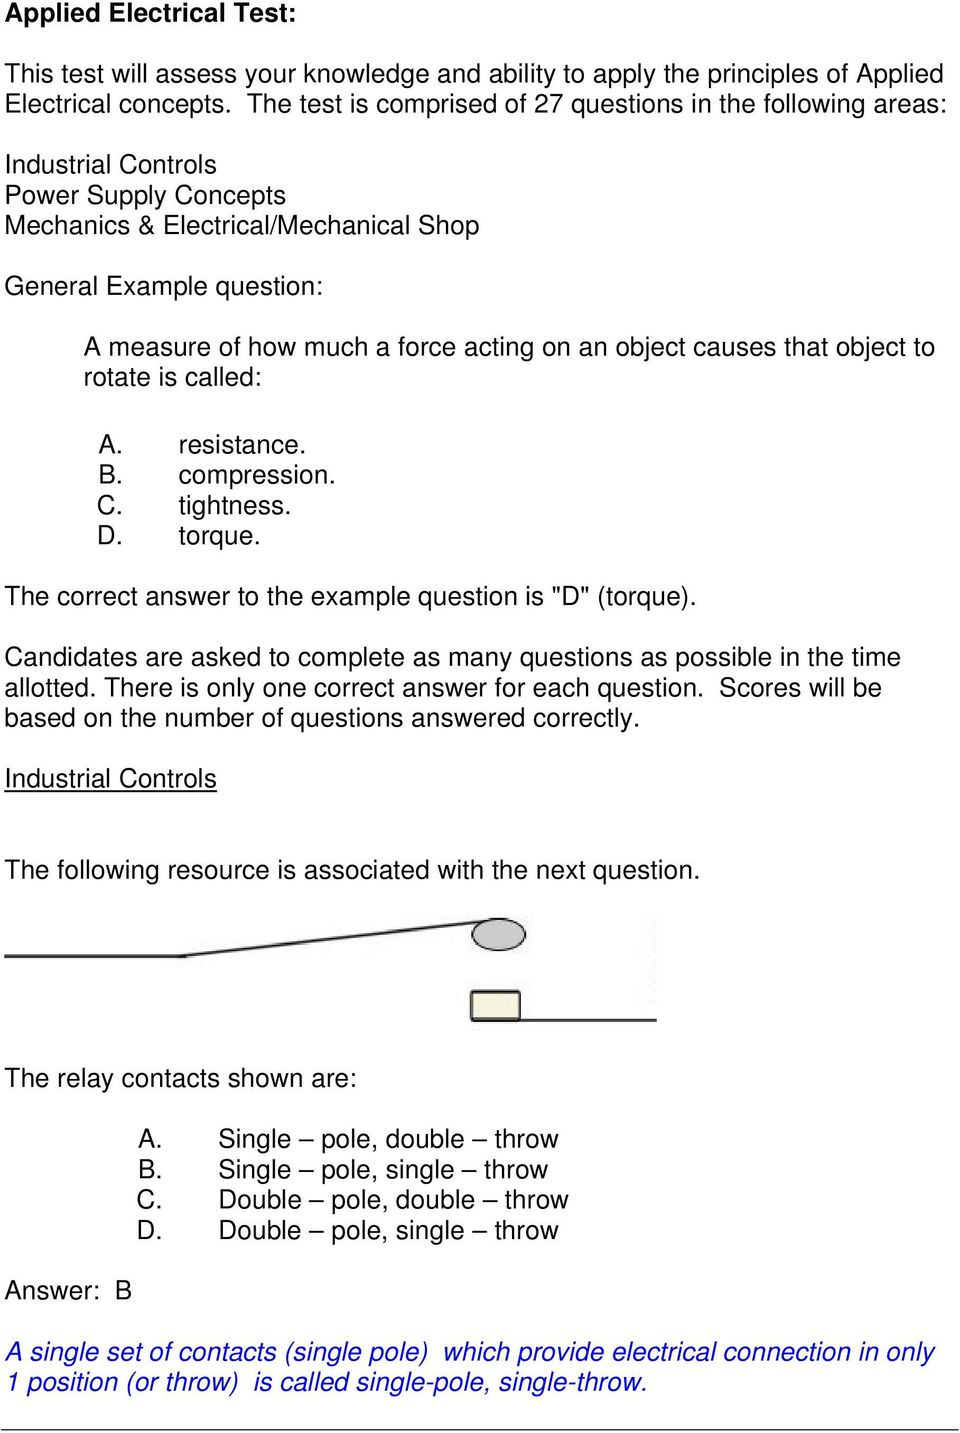 Gentech Practice Questions Pdf Electrical Relay Quiz Acting On An Object Causes That To Rotate Is Called A Resistance